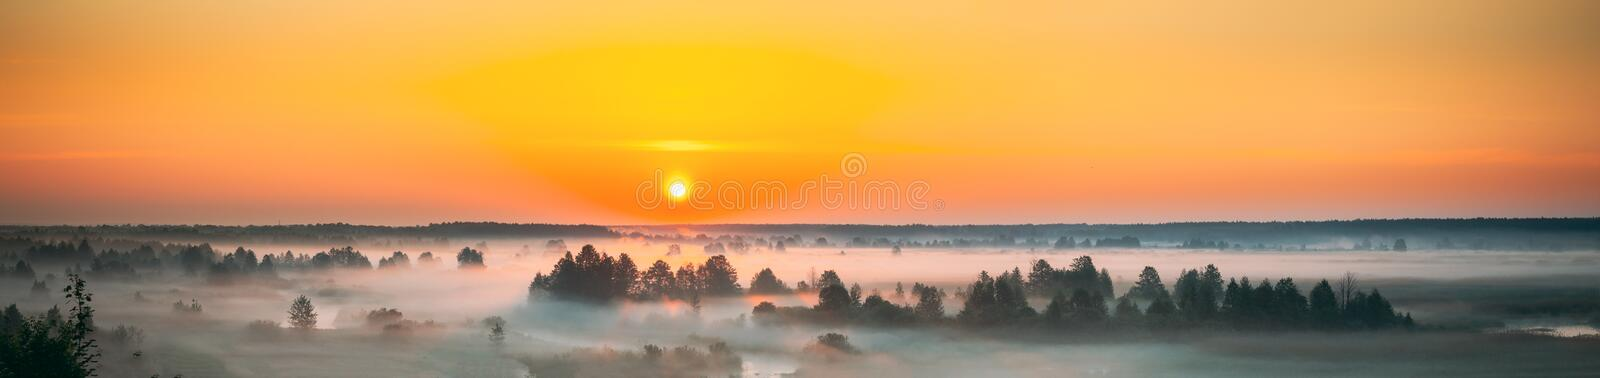 YongFoto 10x8ft Narcissus Land Backdrop Foggy White Flowers Field Mountains Forest Trees Misty Morning Sunrise Dawn Scenery Photography Background Wallpaper Artistic Portrait Photoshoot Props Banner